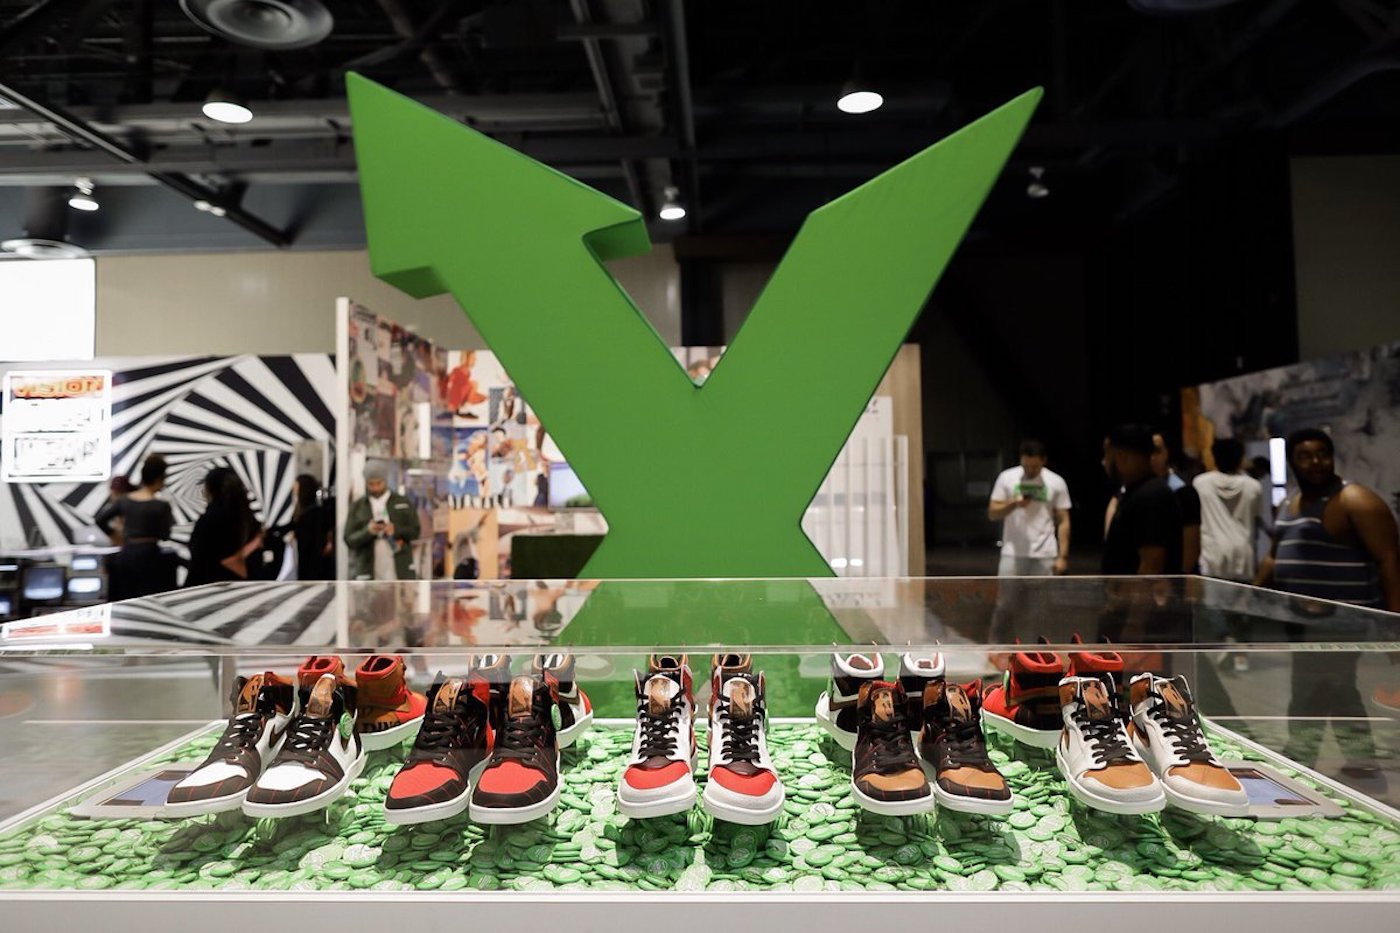 StockX was hacked, exposing millions of